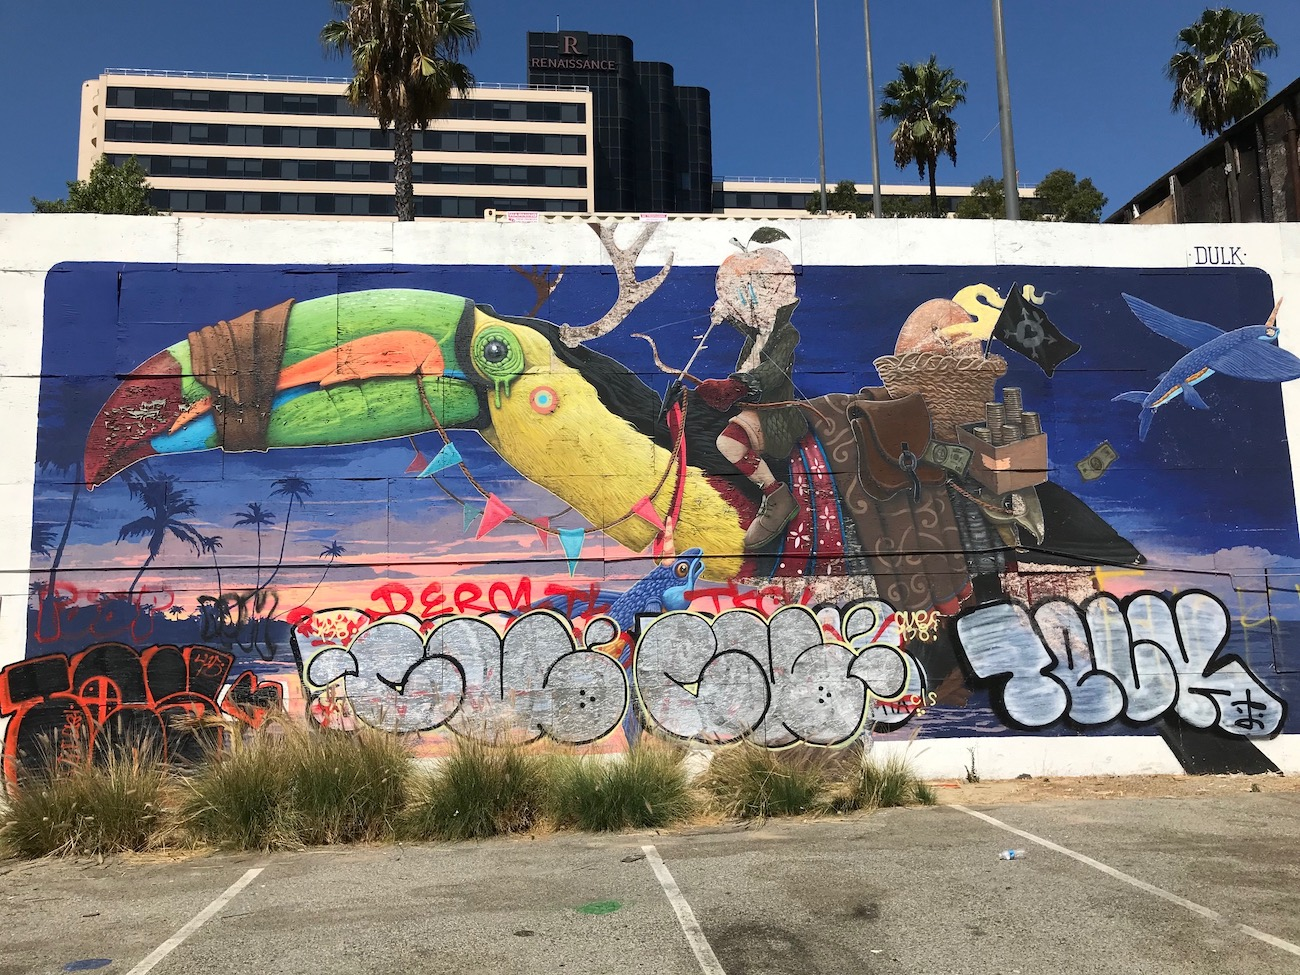 Popular POW! WOW! mural painted over due to vandalism